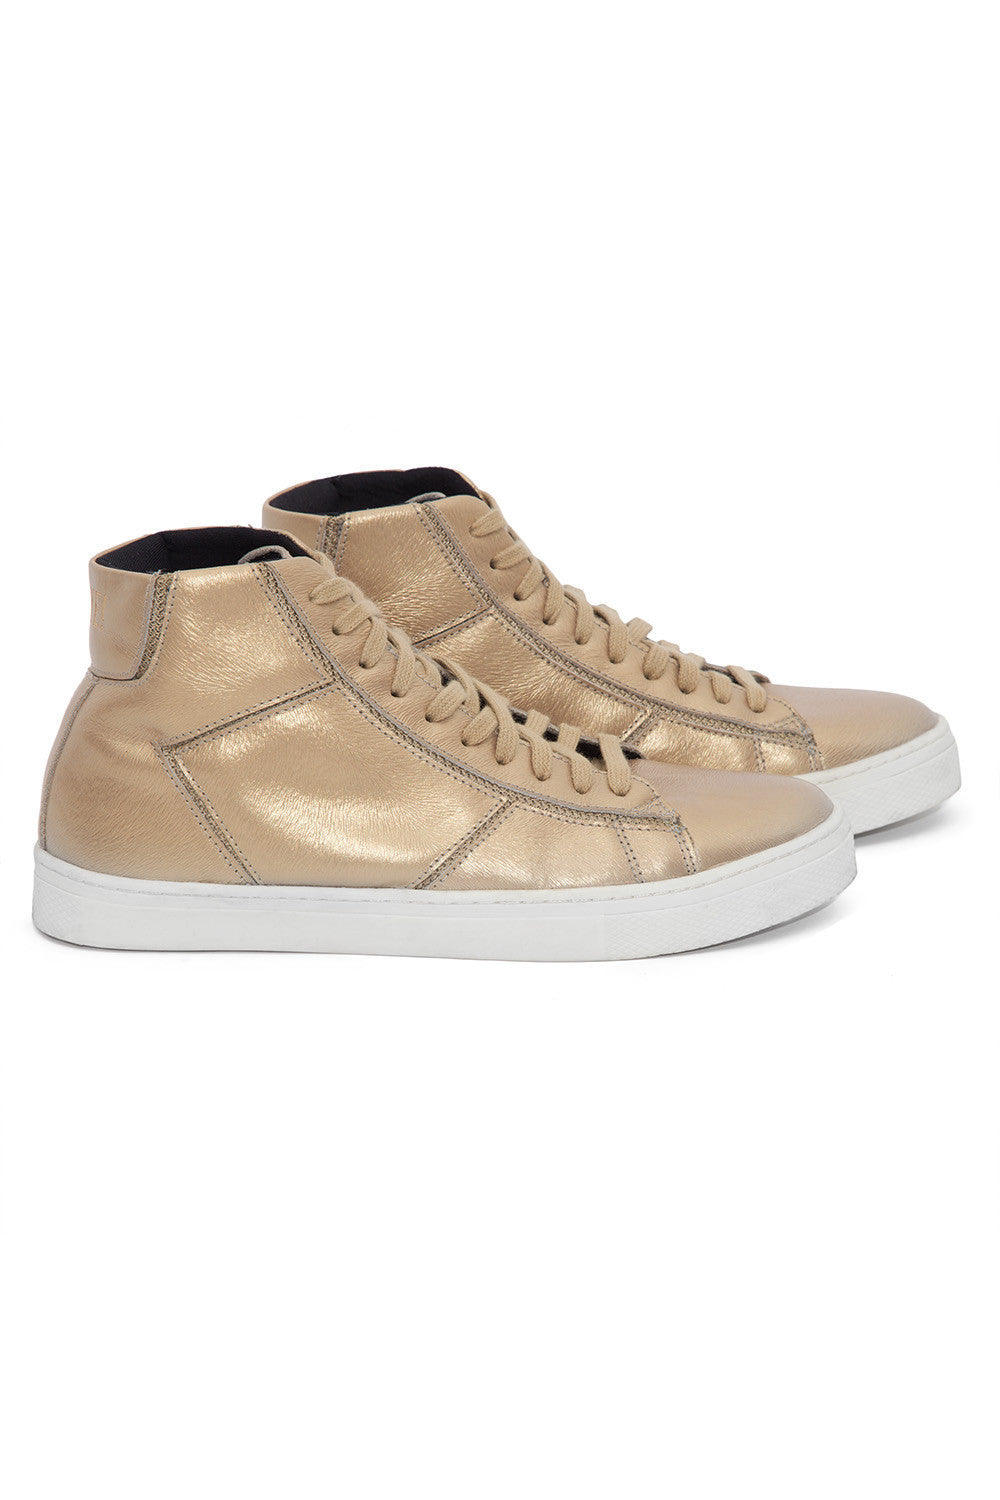 Metallic Bright Gold Sneakers 1